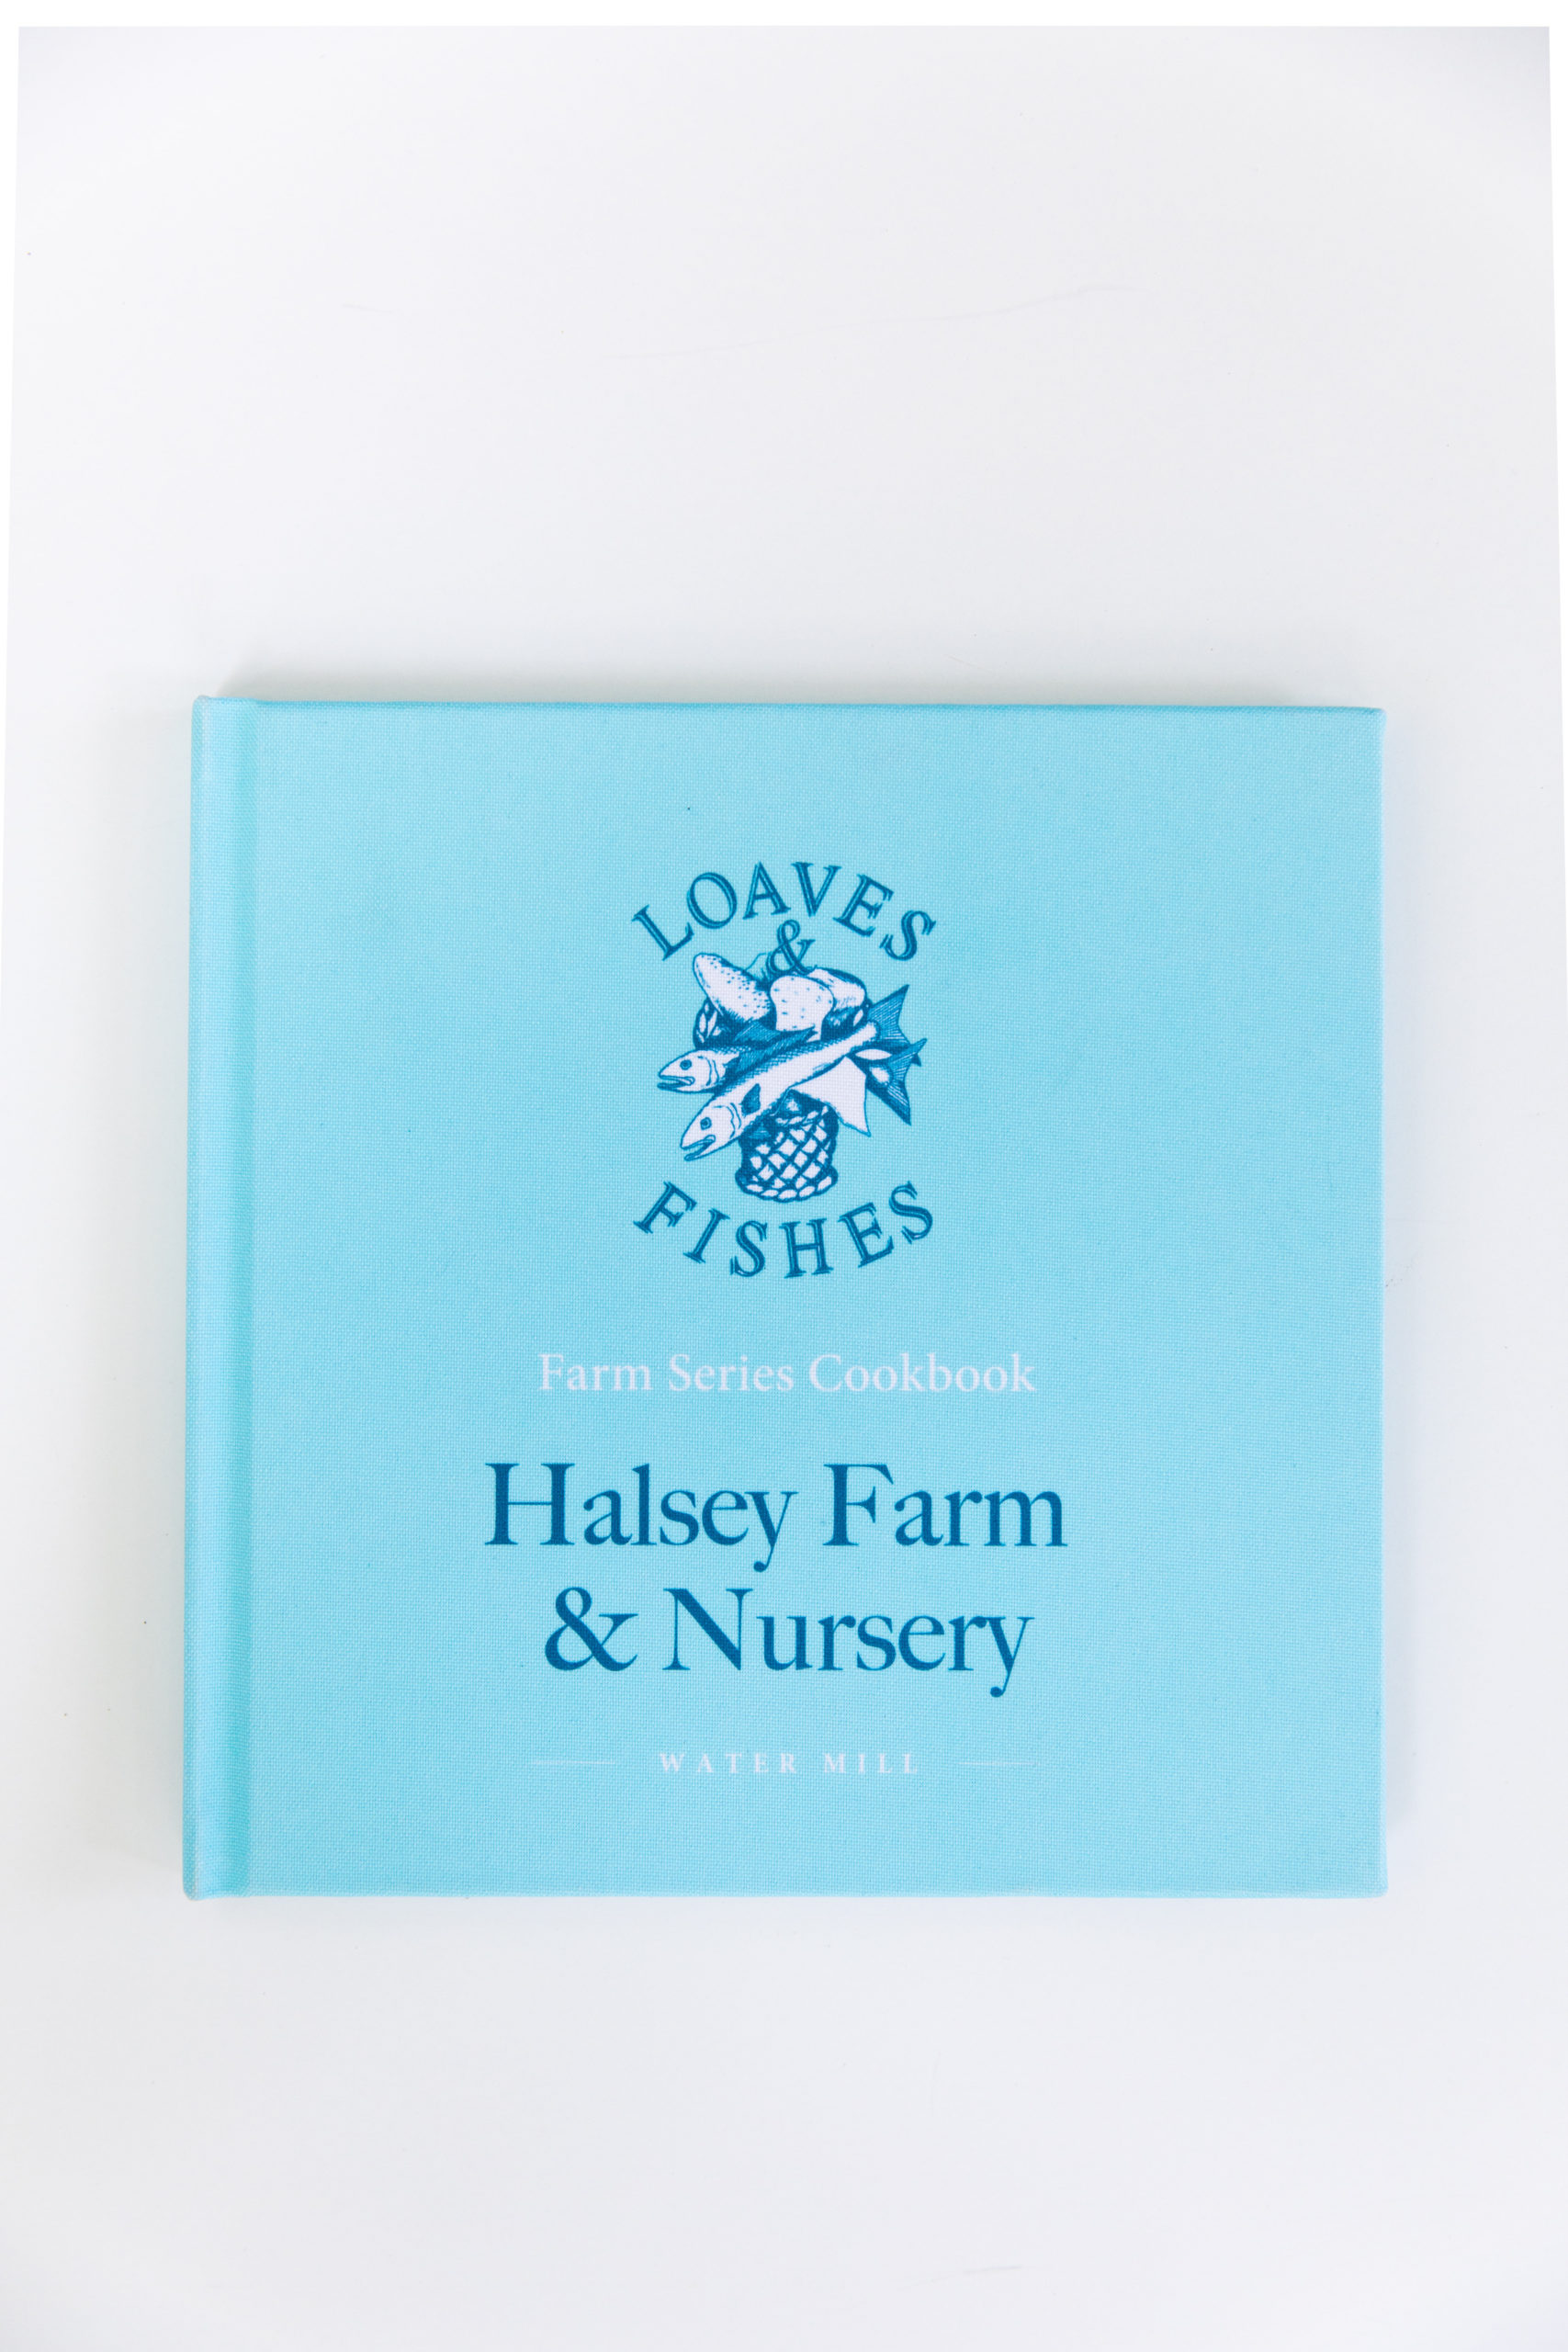 Loaves & Fishes Halsey Farm & Nursery cookbook is new for fall.